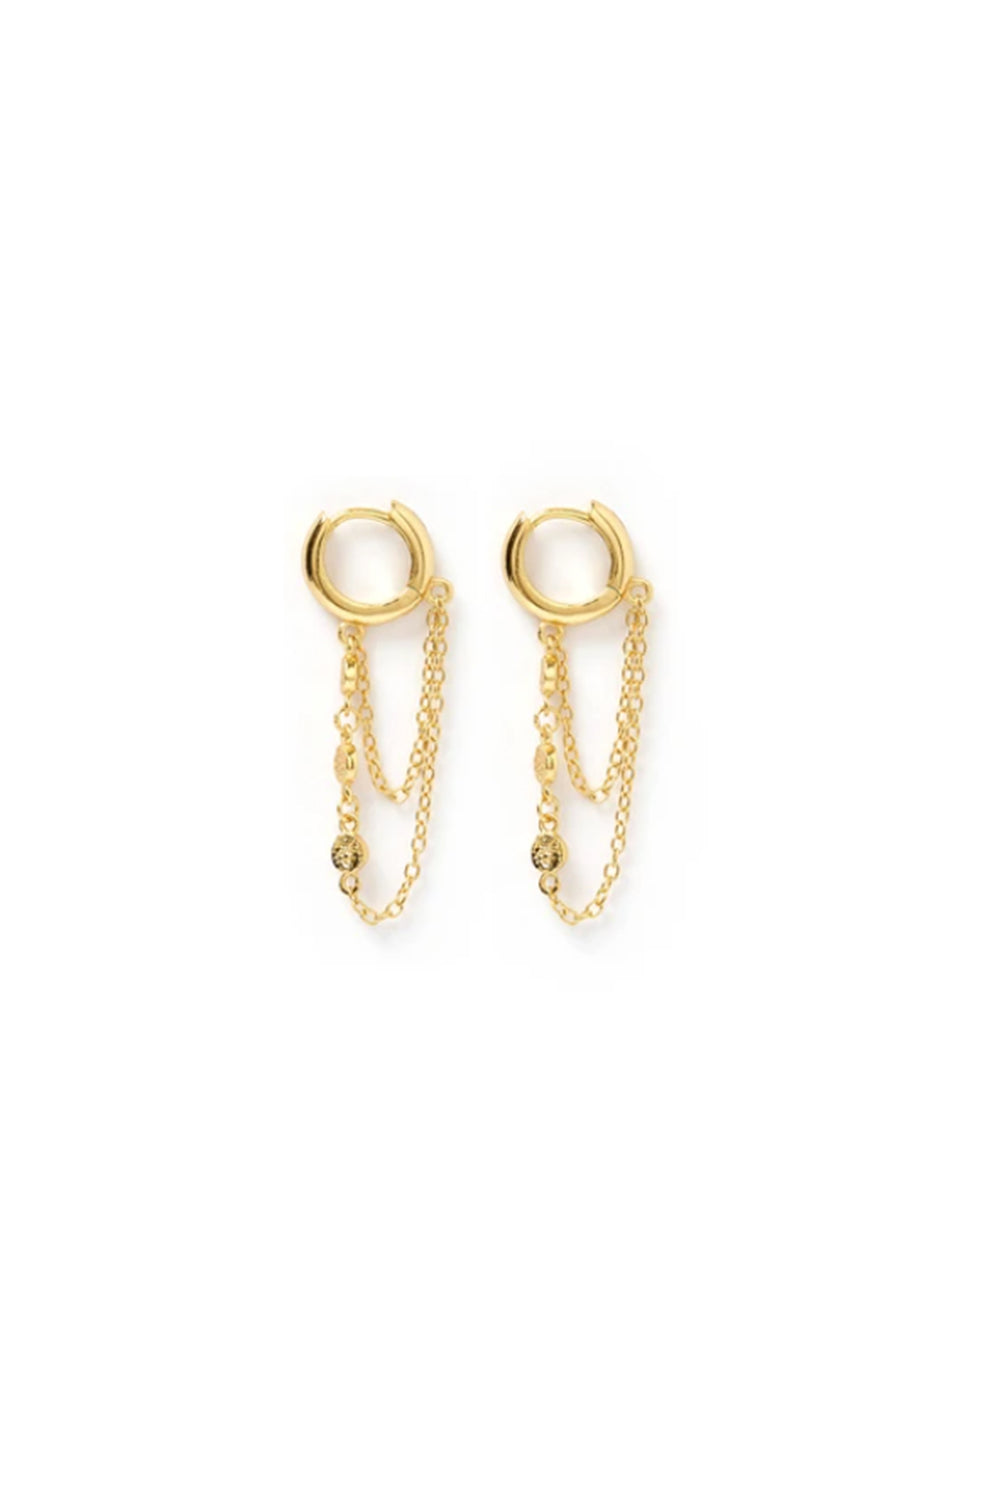 ARMS OF EVE - Paloma Gold Huggie Earrings